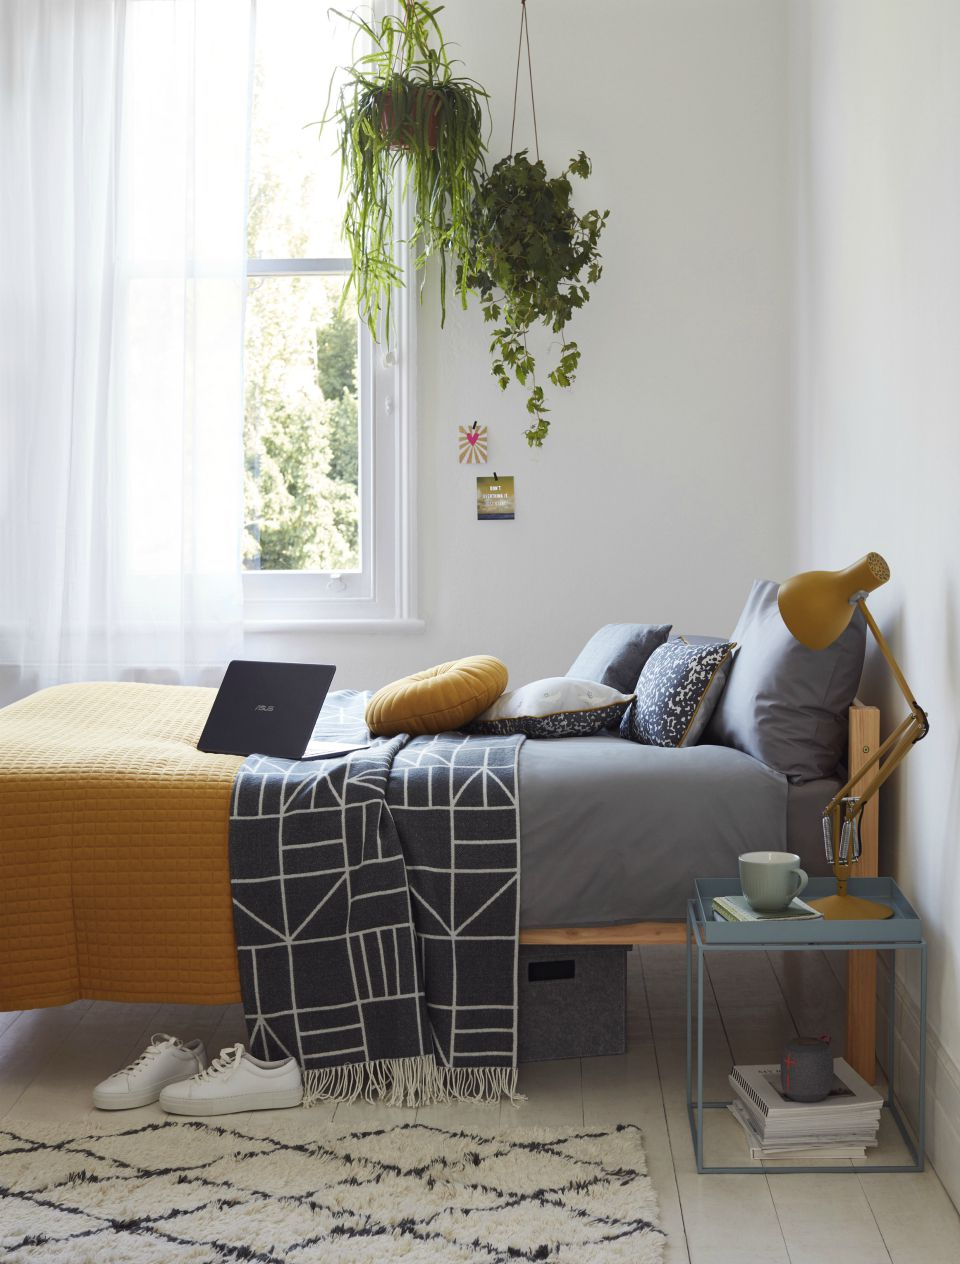 interior design for student wellbeing, student bedroom